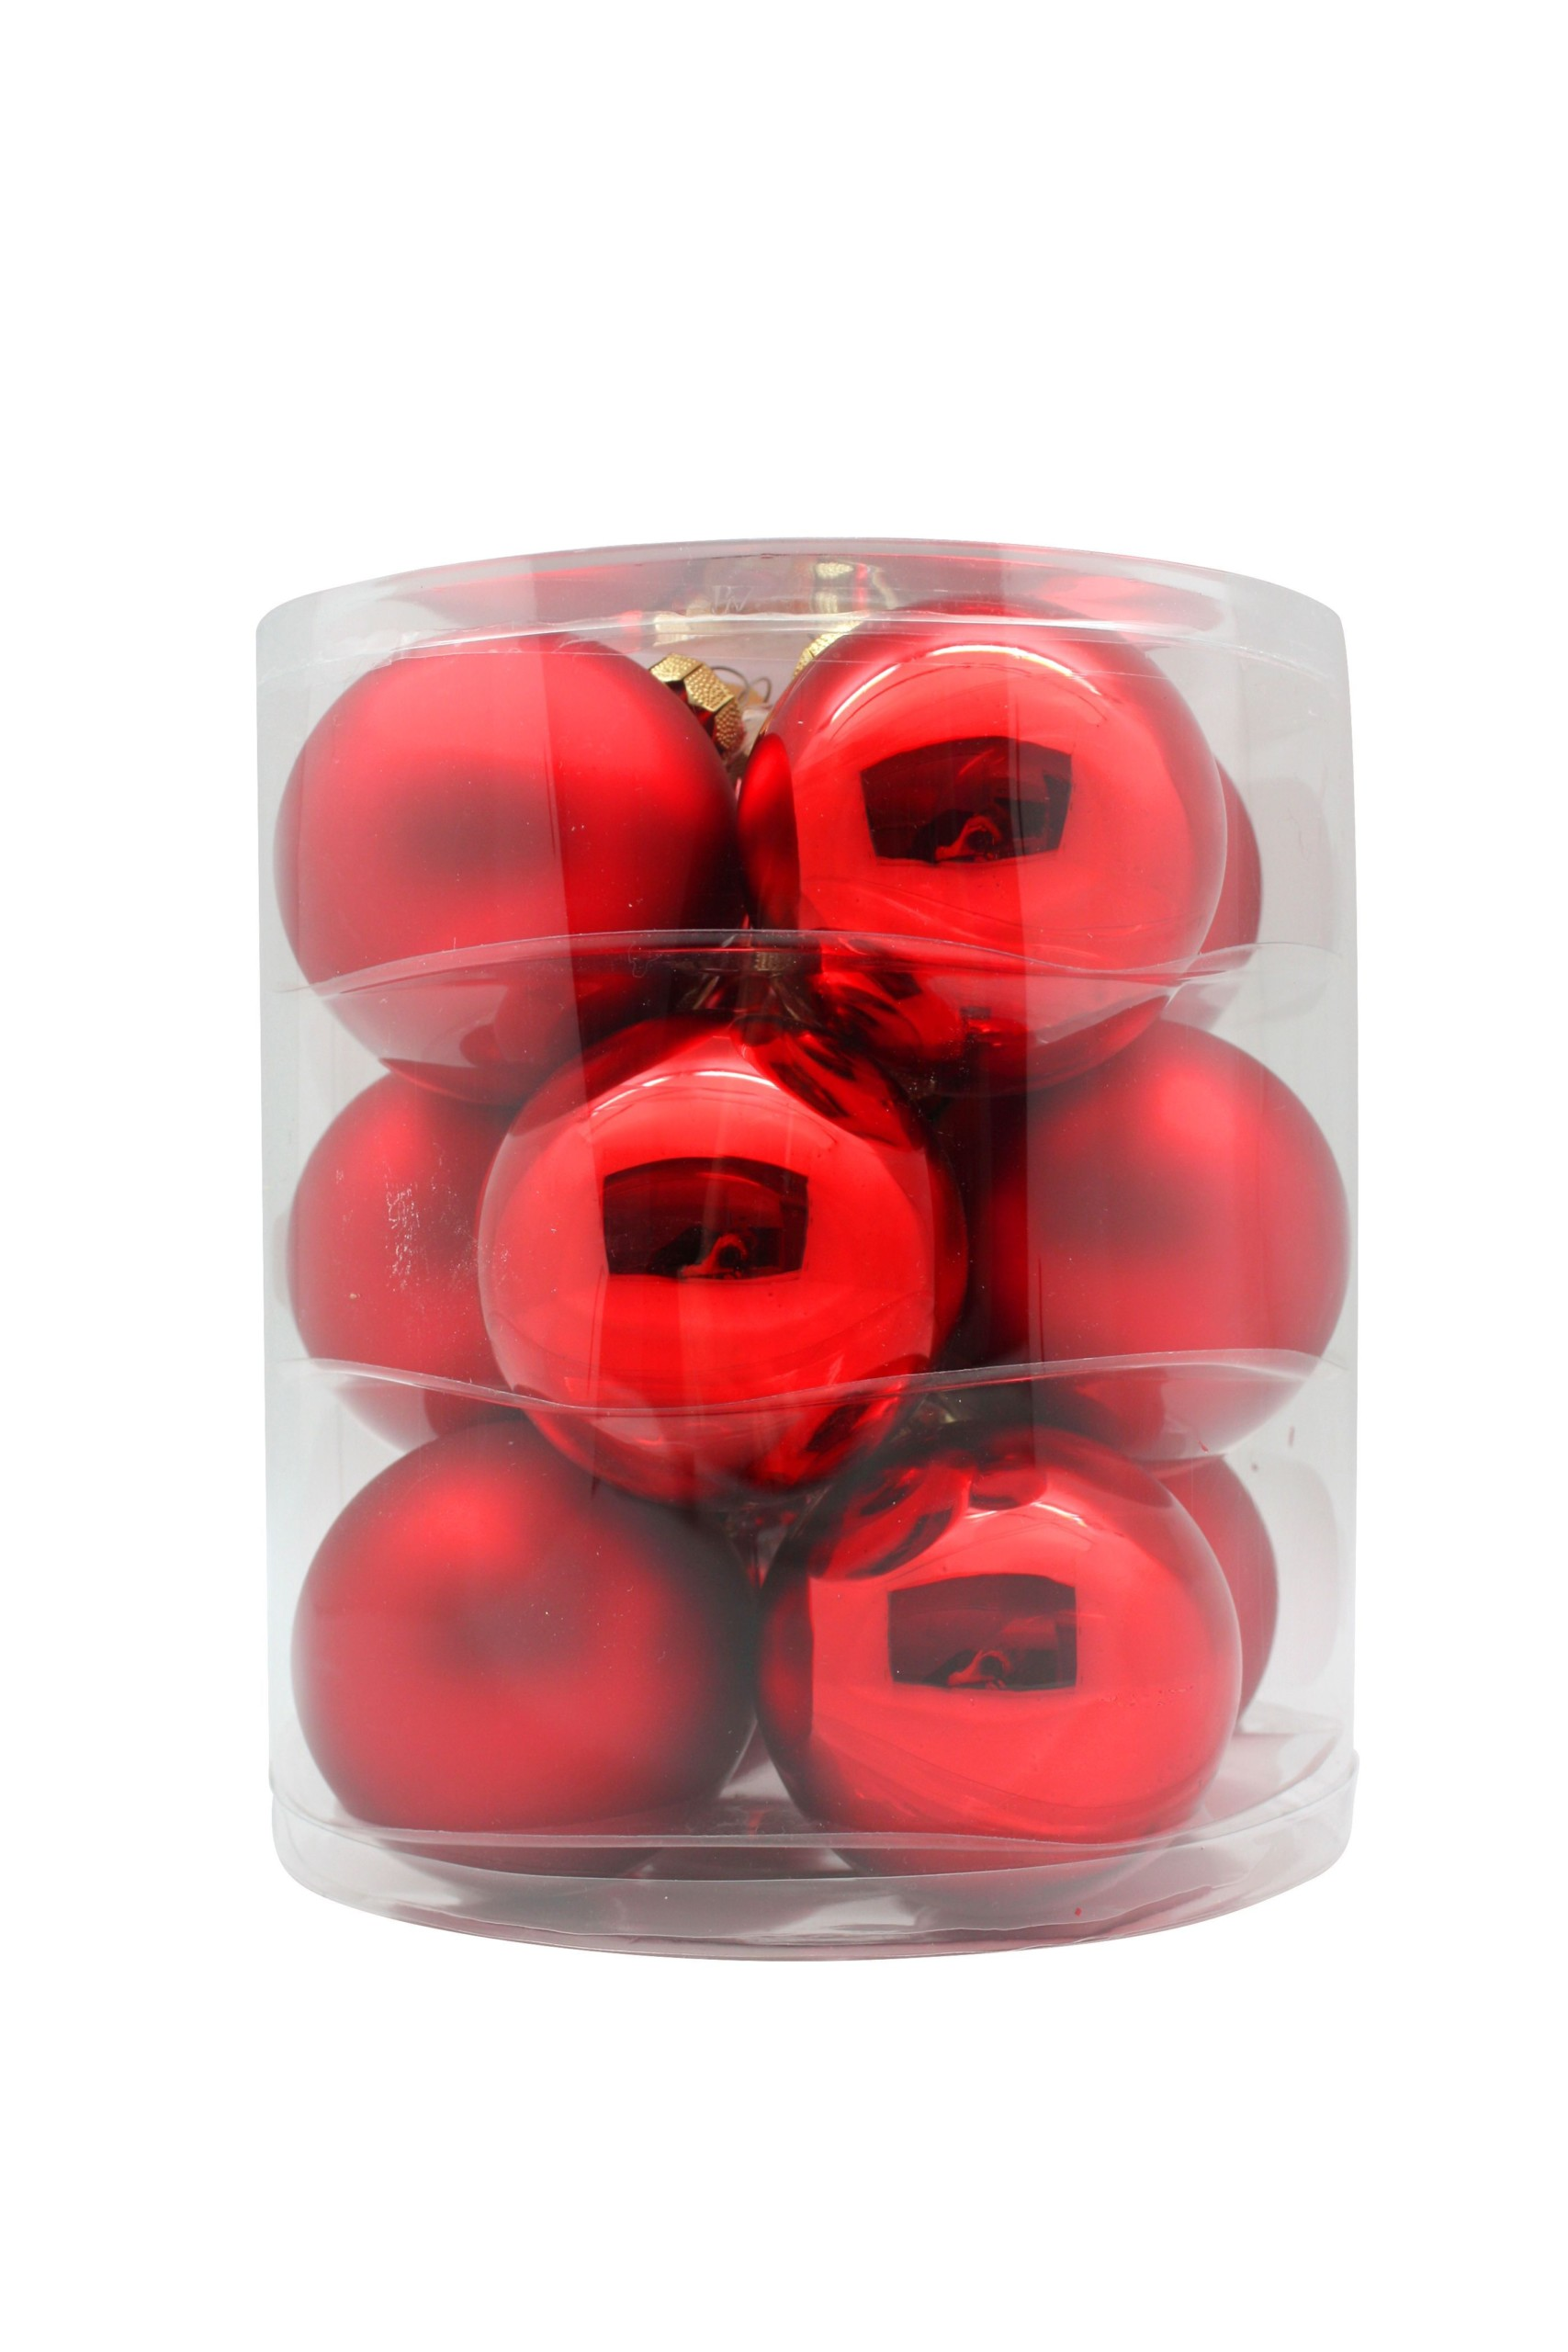 red-shiny-matte-inge-glass-baubles-purely-christmas-12002C109